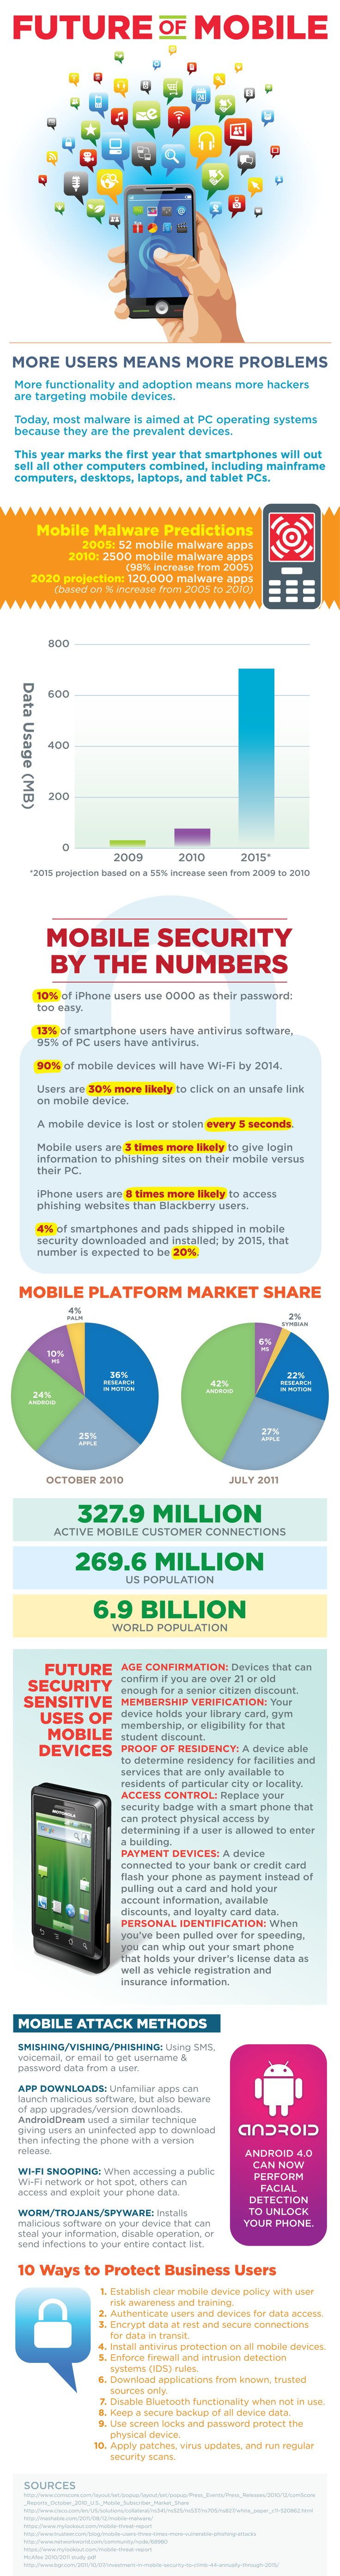 [INFOGRAPHIC] Mobile Security: Smishing, Vishing, And The Rise Of Mobile Computing